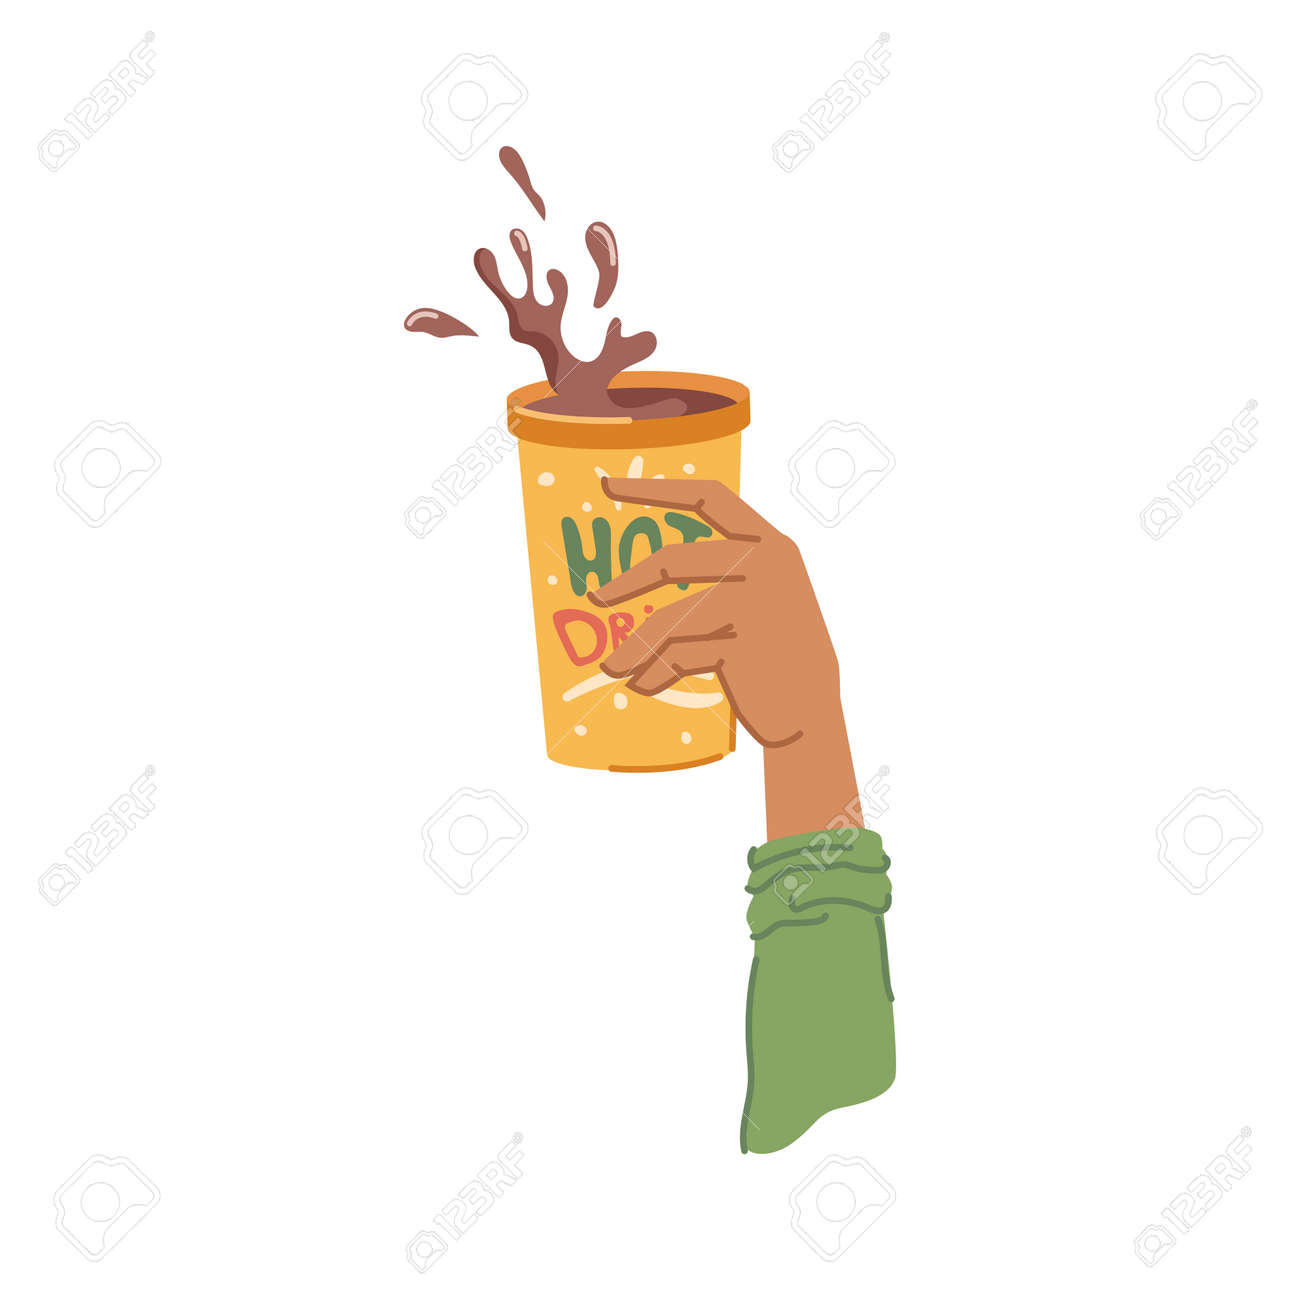 Cup with hot chocolate or coffee, isolated hand holding tasty warm drink served in restaurant or cafe. Aromatic beverage in mug, splashes of liquid advertisement. Vector in flat cartoon style - 171589766